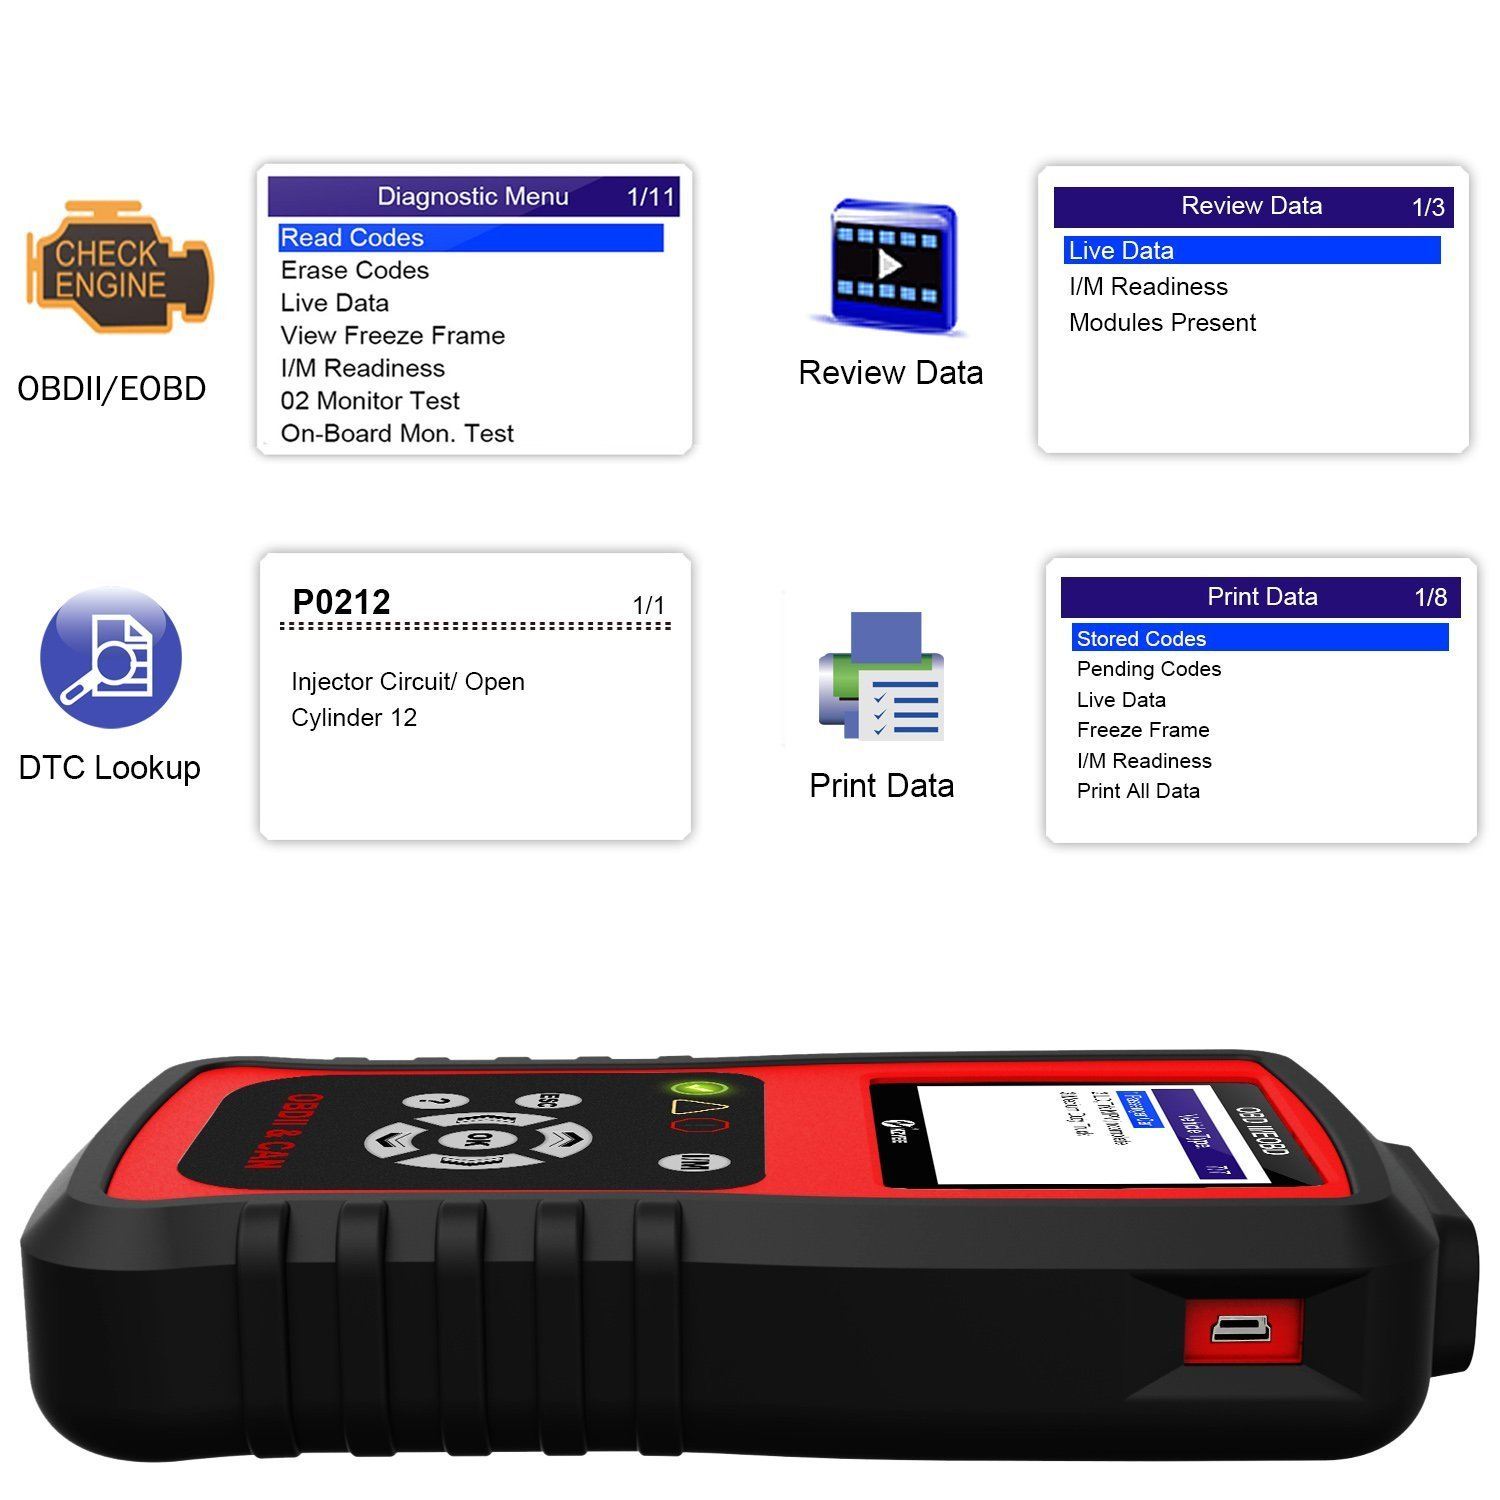 Kzyee KC401 Universal OBD2 Scanner, Enhanced OBD II Car Code Reader/Eraser Supports ABS Diagnostic Scan Tool with TFT color Screen, for Diesel and Gasoline Engine 12V Vehicles by Kzyee (Image #5)